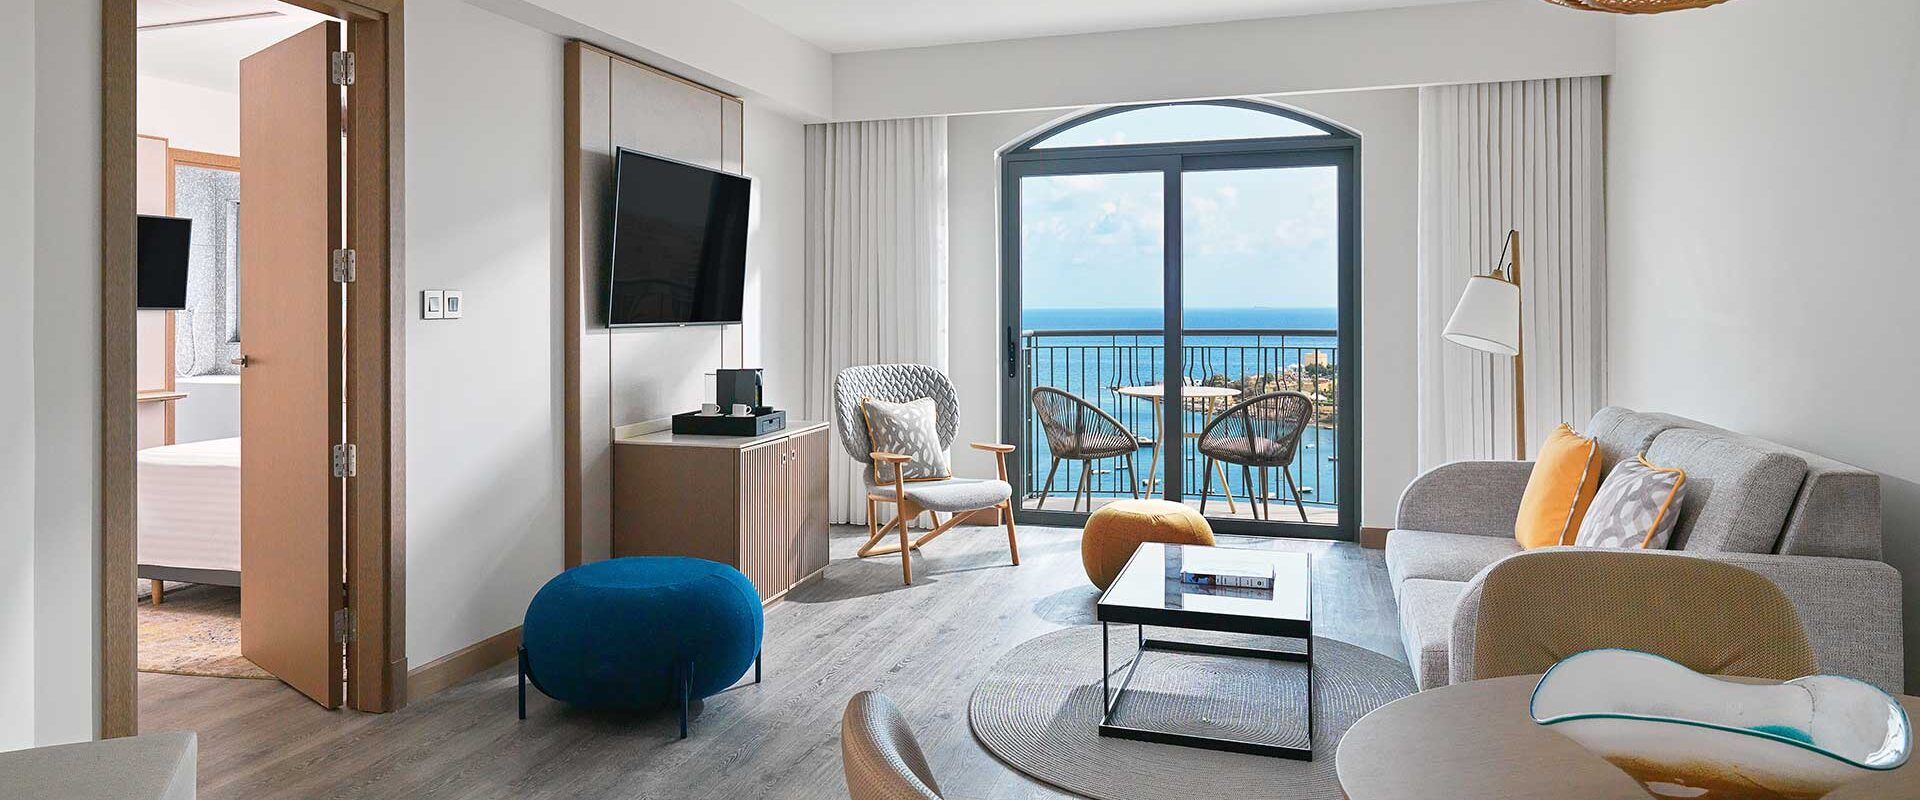 a luxury hotel suite living area with dining room table and sitting area and a balcony overlooking the mediterranean sea